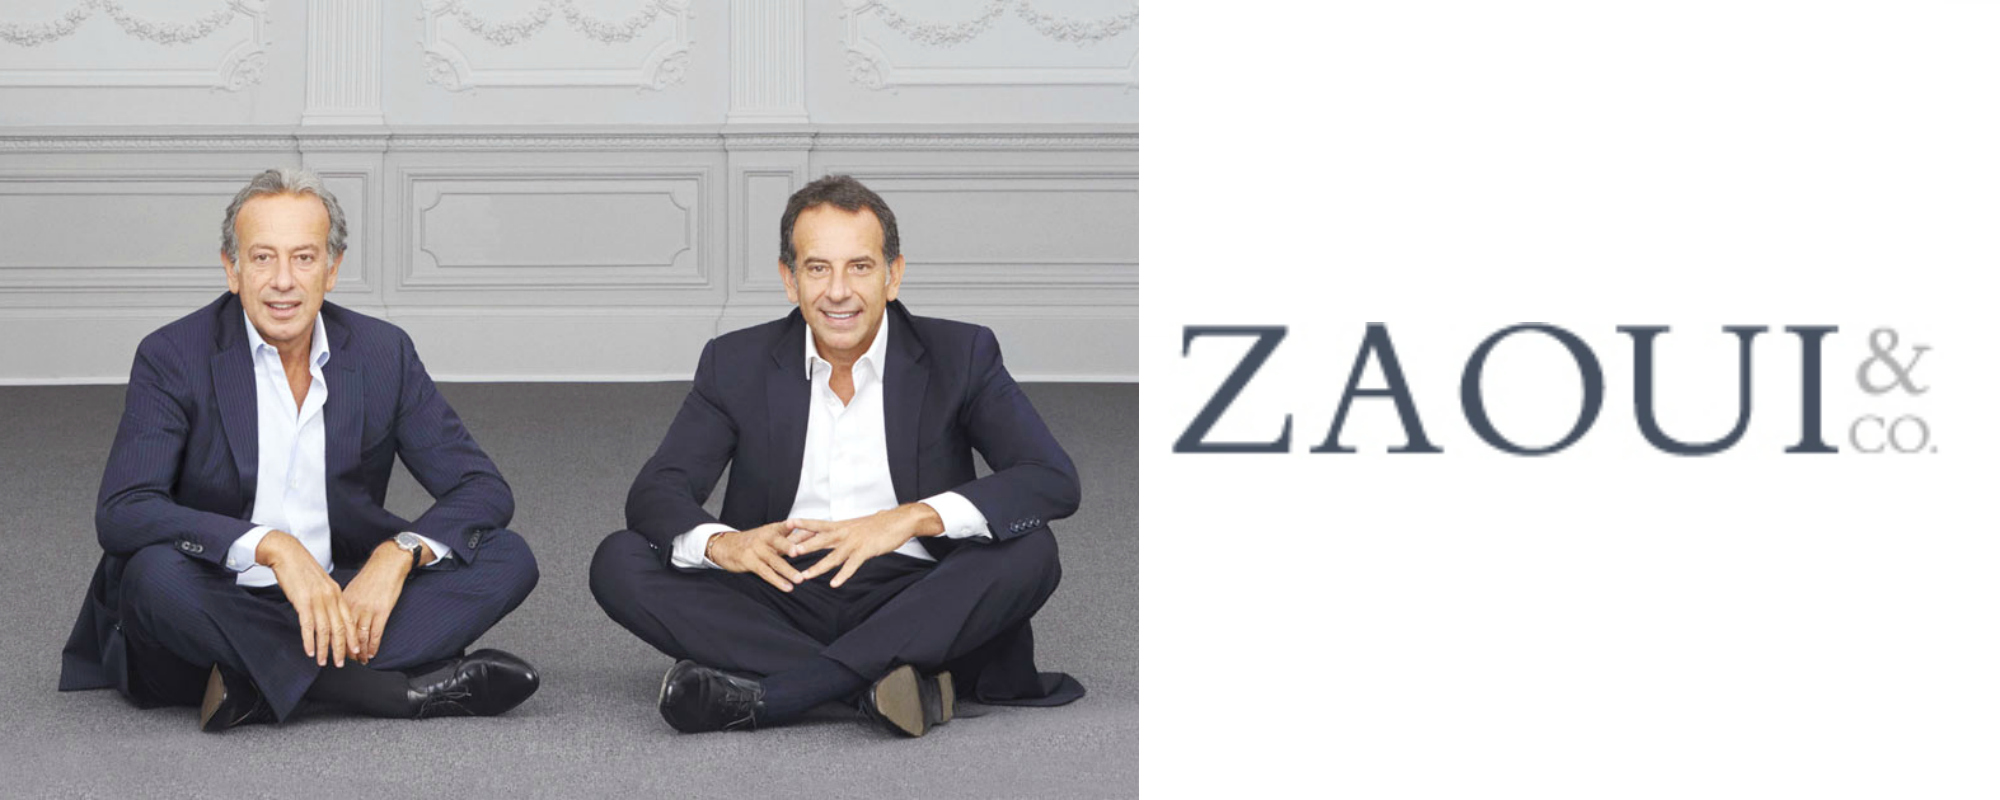 zaoui & co Most Powerful M&A Firms in the world best upslide